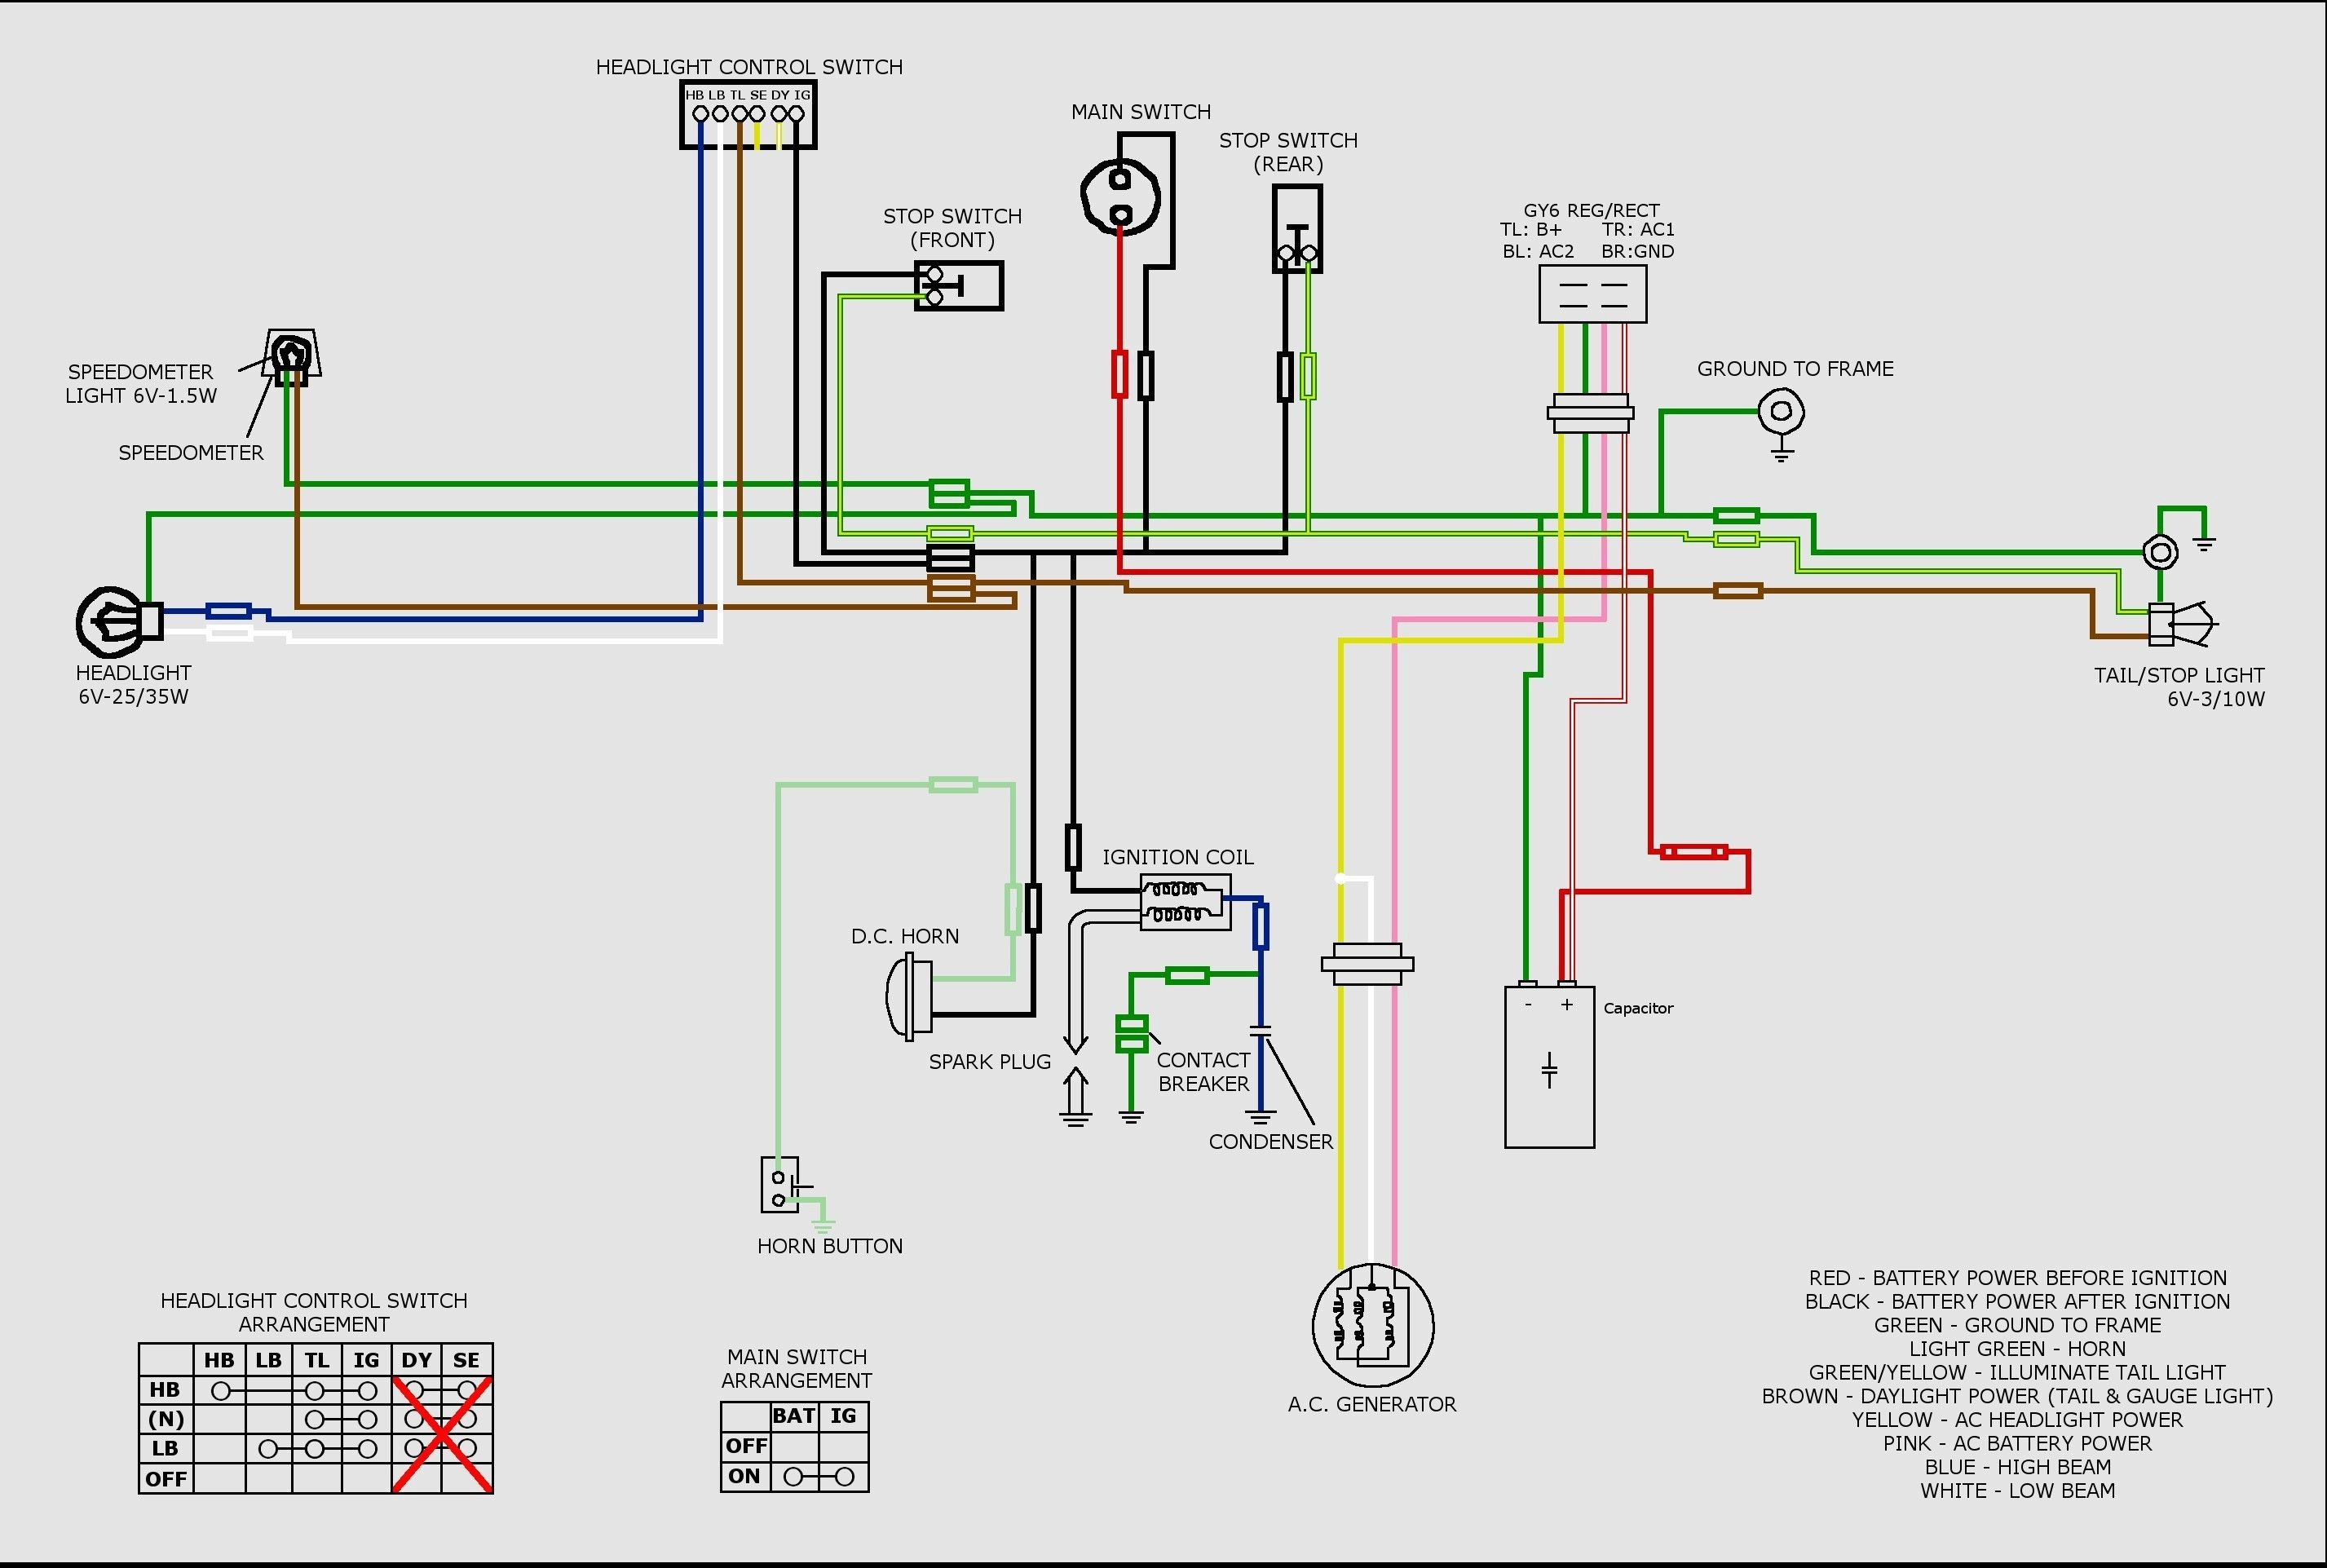 Gy6 Engine Wiring Diagram Gy6 Wiring Diagram Awesome 150cc Gy6 Wiring Diagram within Webtor Me Of Gy6 Engine Wiring Diagram